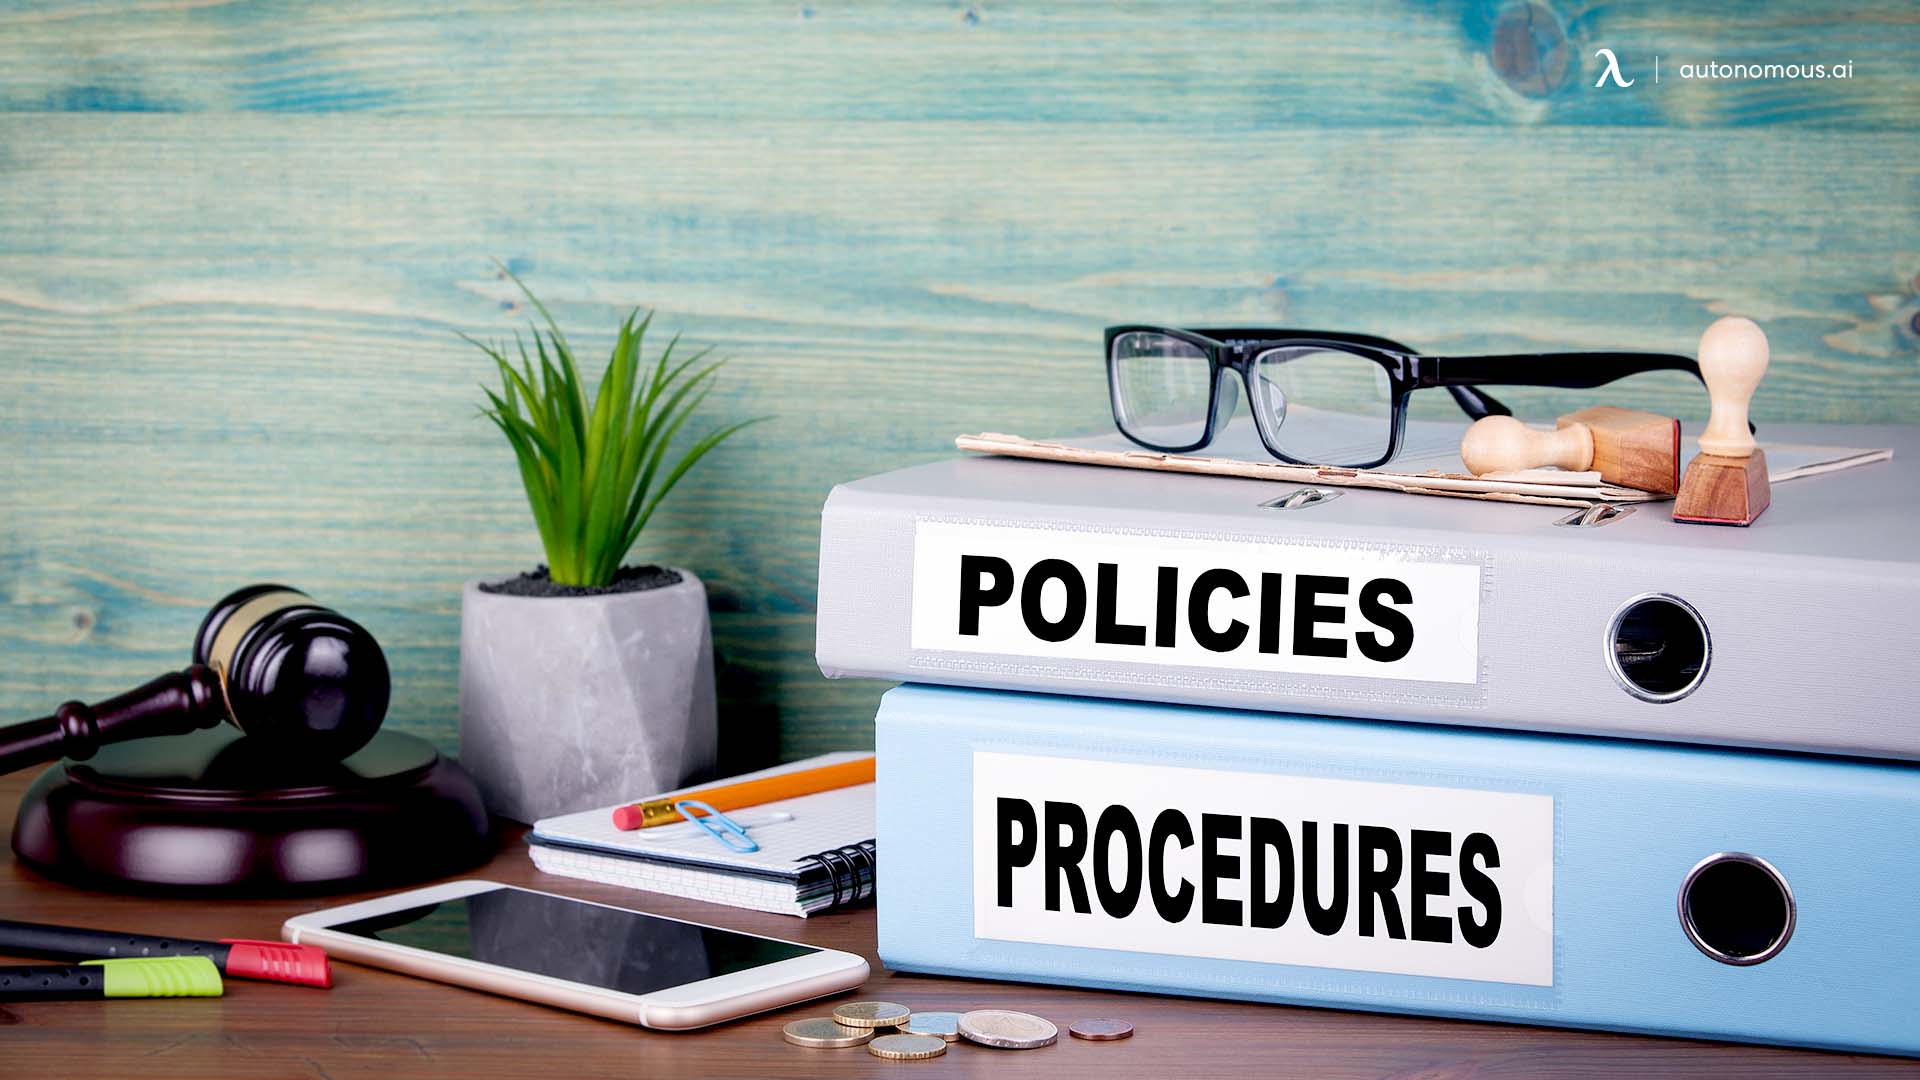 Why Do Companies Need to Have a Hybrid Work Policy?